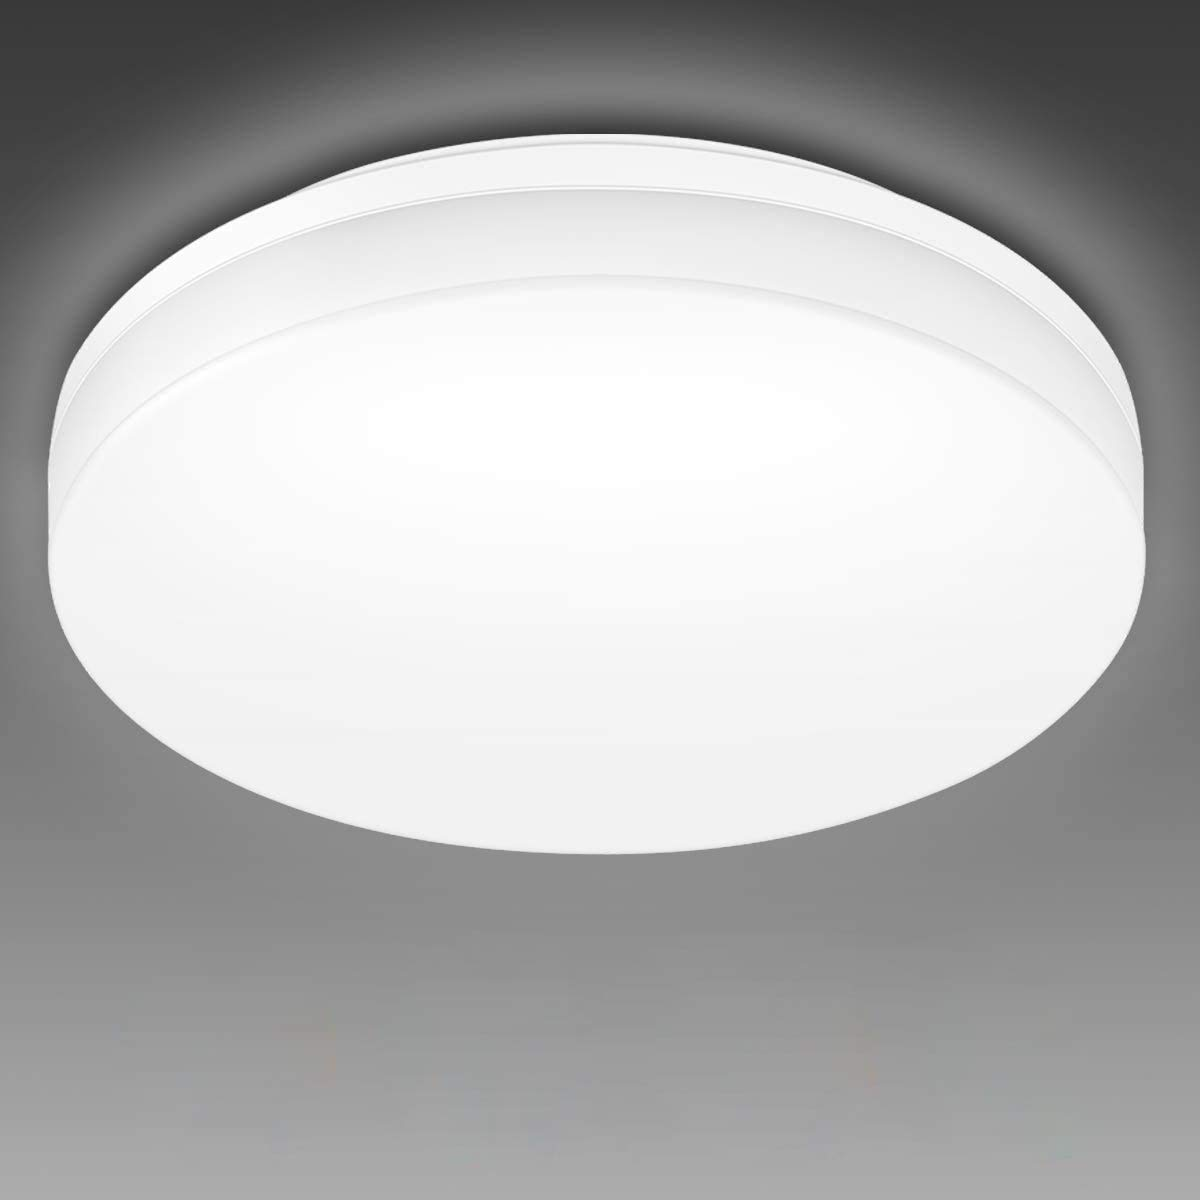 Lepro 24W LED Ceiling Light, IP54 Waterproof, Daylight White 5000K, 2400lm Bright Flush Ceiling Light for Bathroom, Kitchen, Hallway, Outside Porch and More